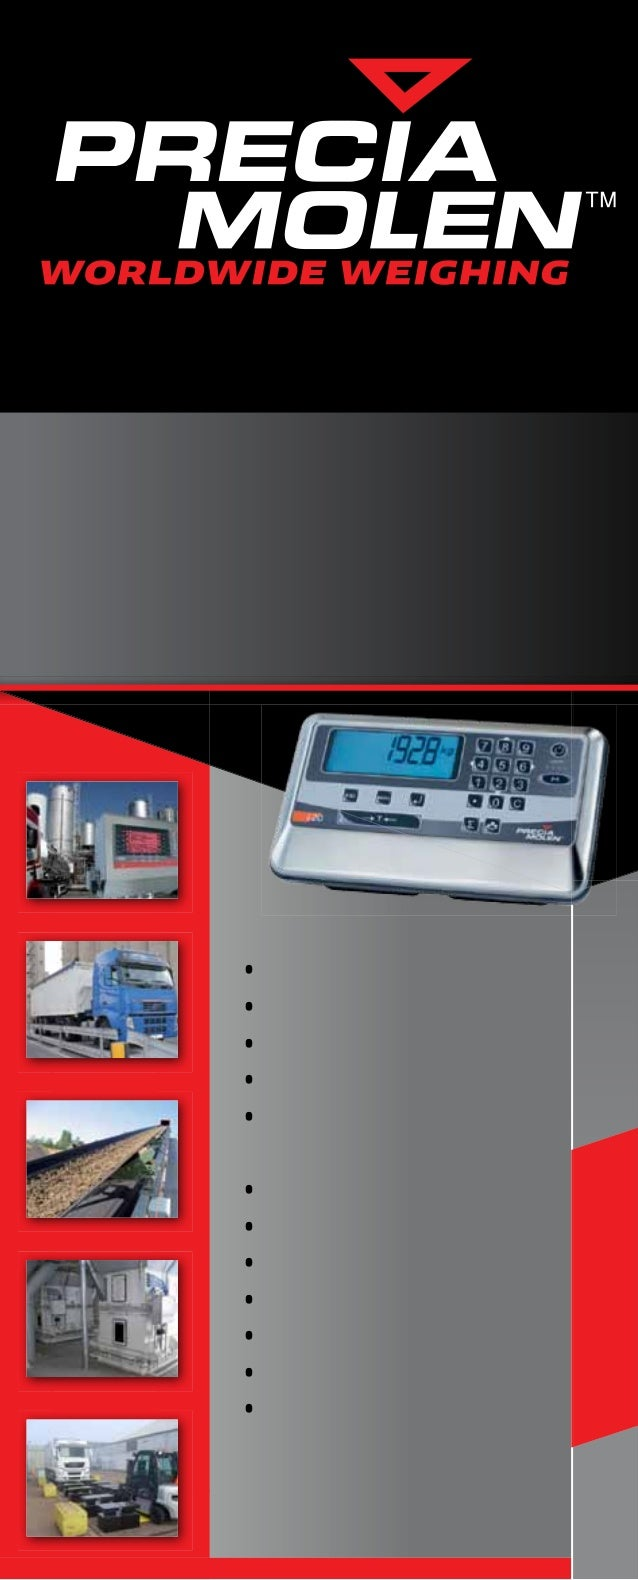 PRODUCT GUIDE  •   Precia Access range  •   Industrial scales  •   Weighbridges  •   Software  •   Continuous weighing    ...